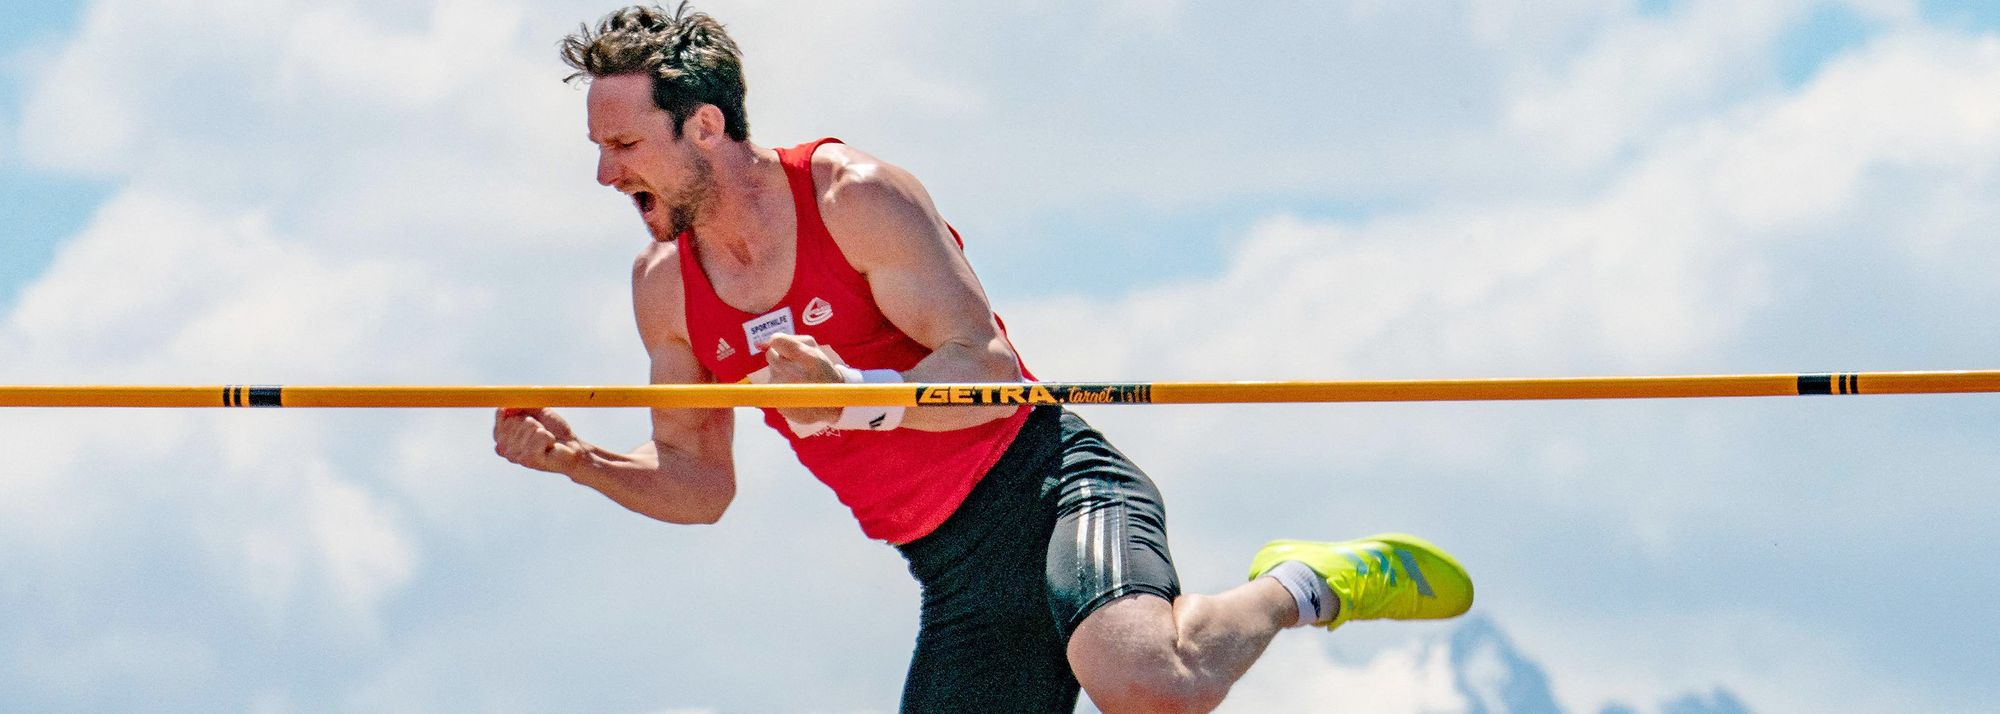 Germany's Kai Kazmirek and Canada's Georgia Ellenwood emerged the winners at the Stadtwerke Mehrkampf-Meeting, thanks to strong second-day performances at the World Athletics Challenge – Combined Events meeting in Ratingen on Sunday (20).